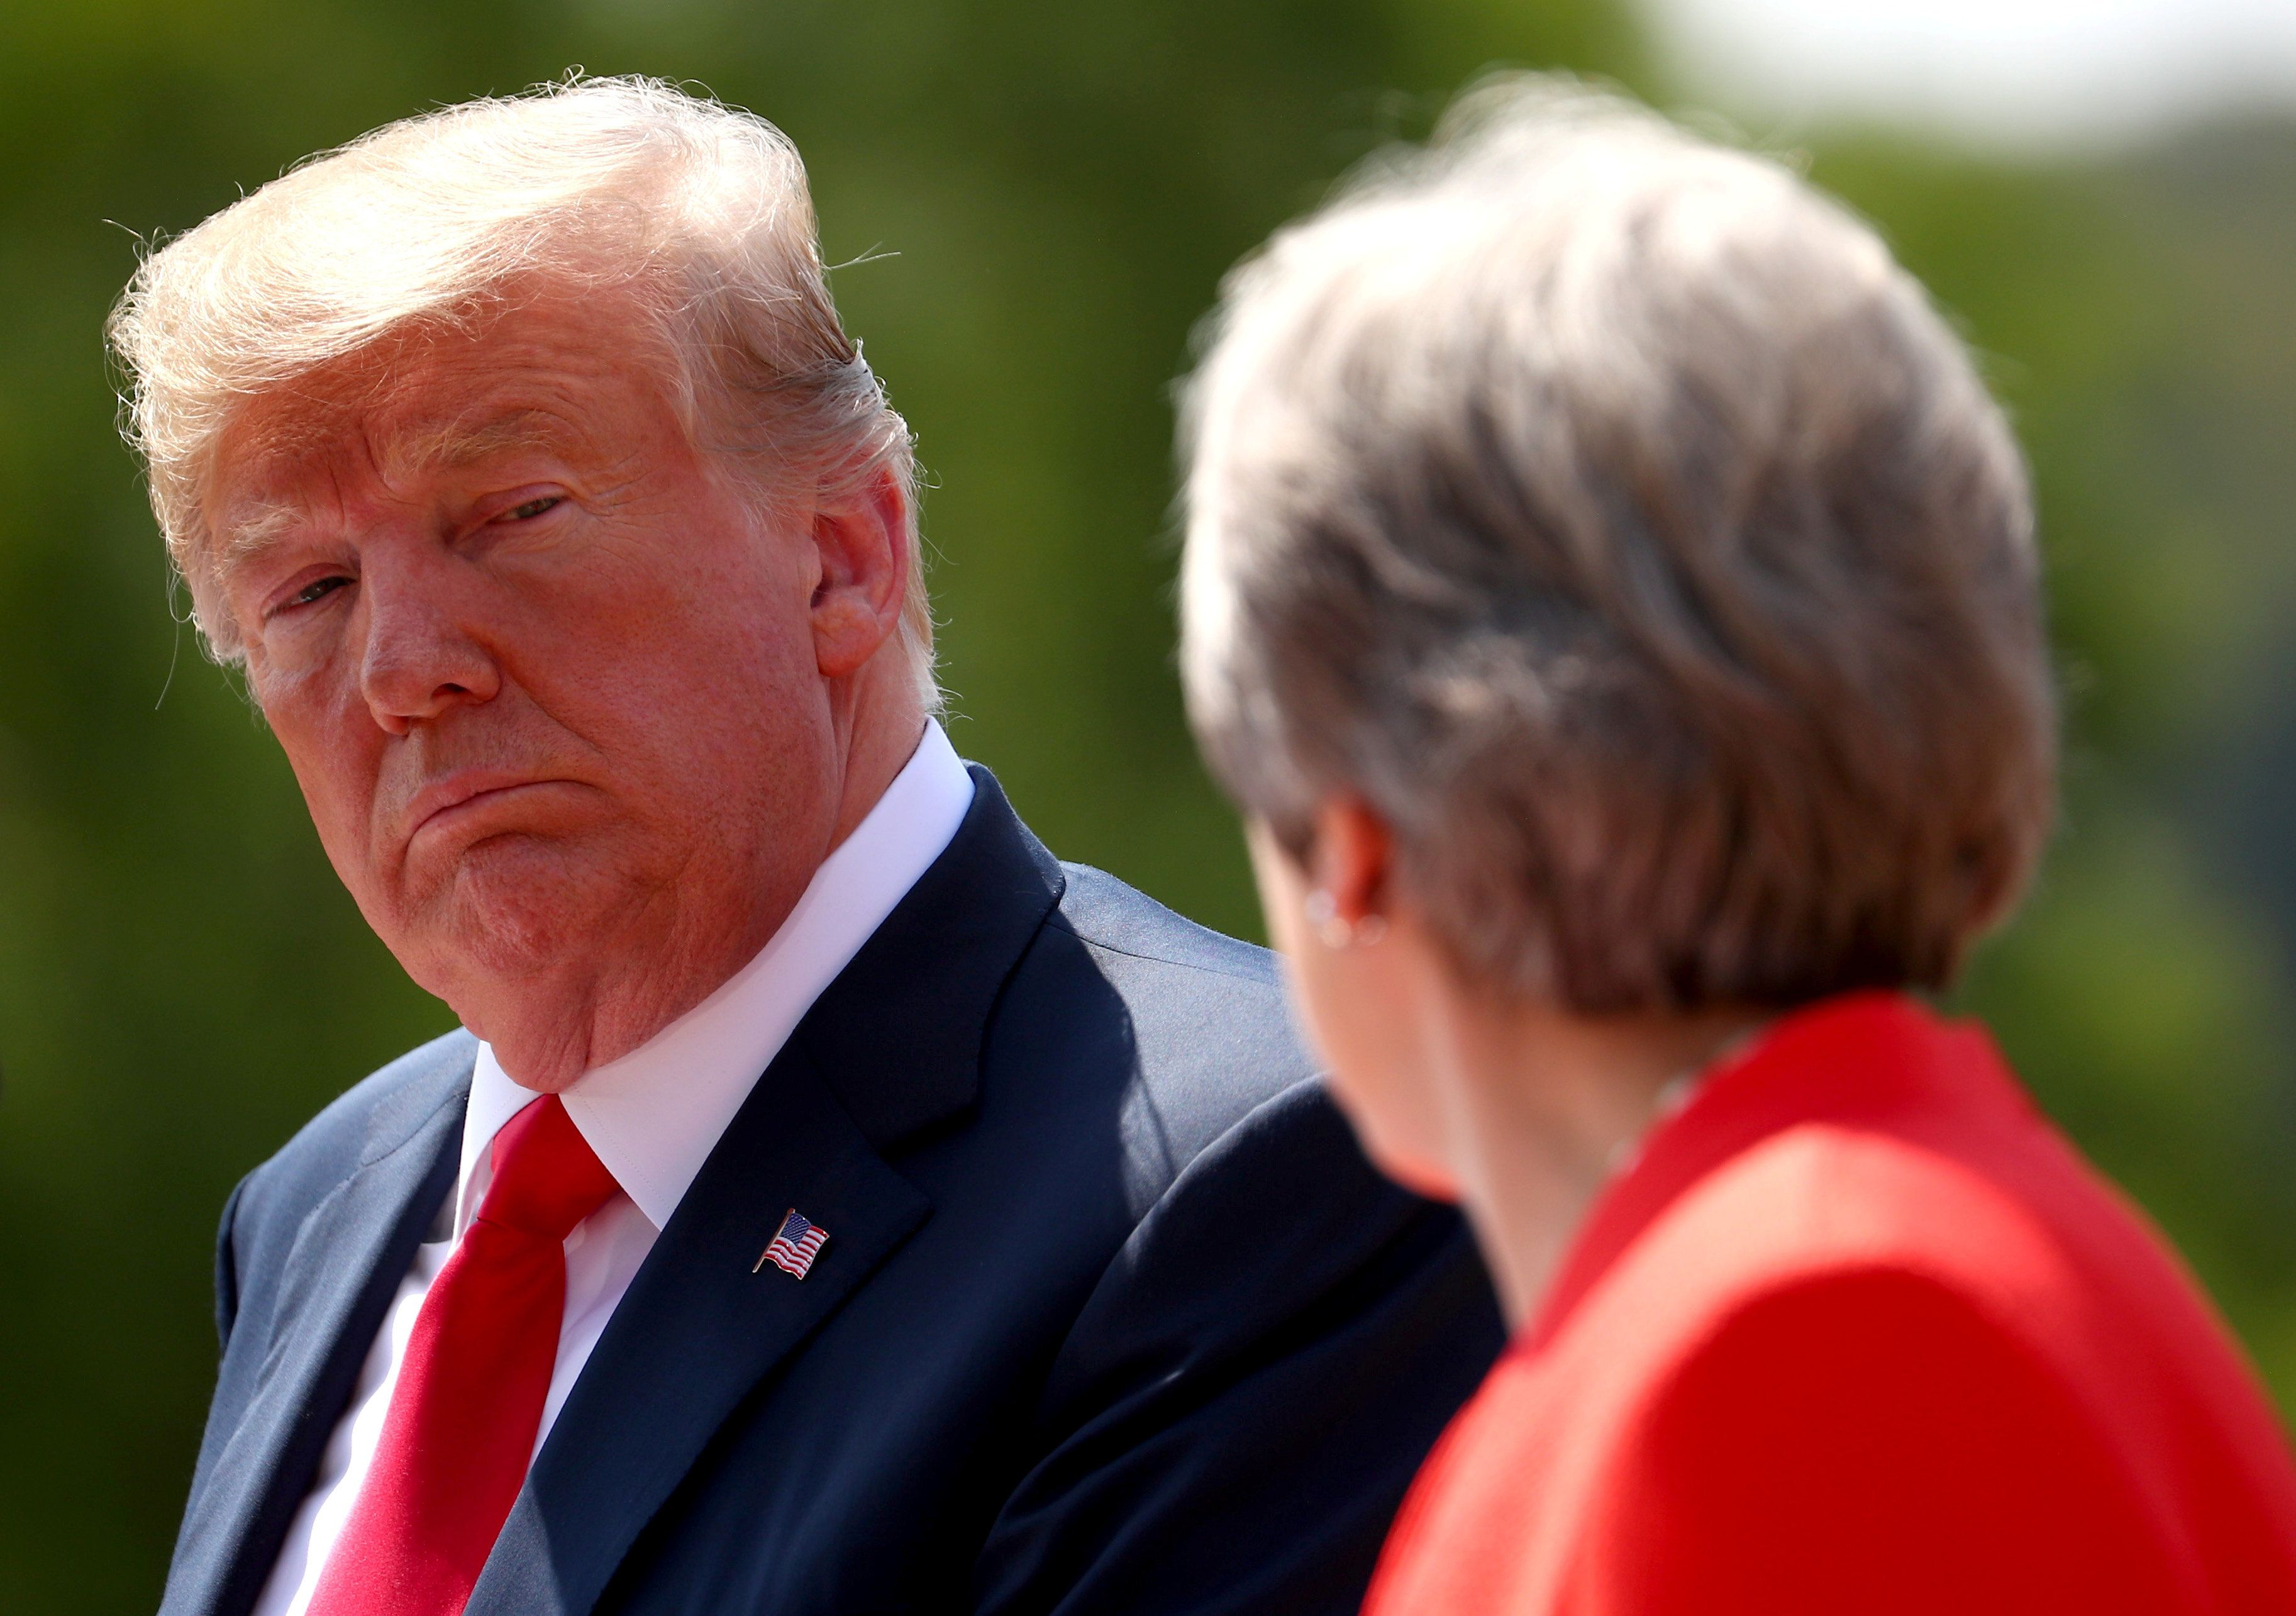 Trump Says He Predicted Brexit From Scotland ― But He Wasn't There